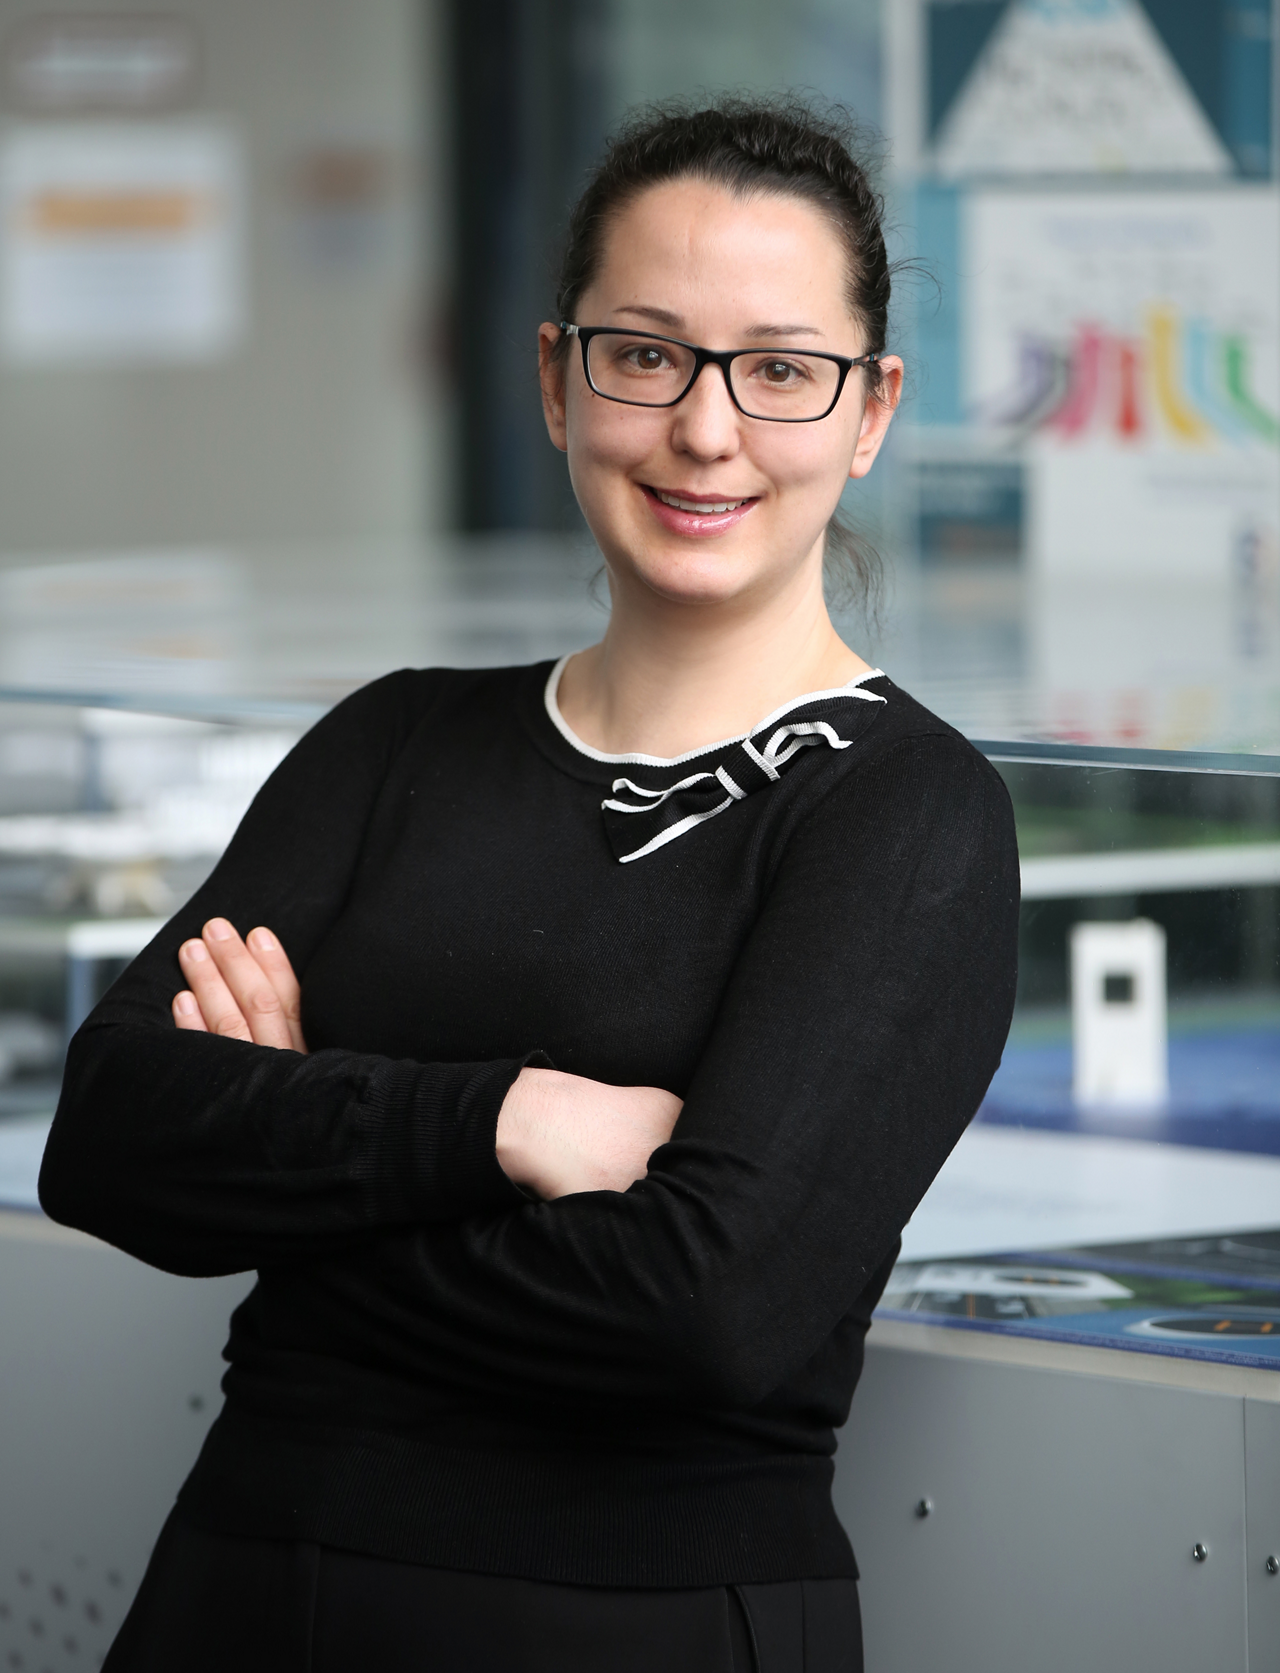 Mona Moren is involved with the CityAirbus demonstrator vehicle integration with Airbus Helicopters